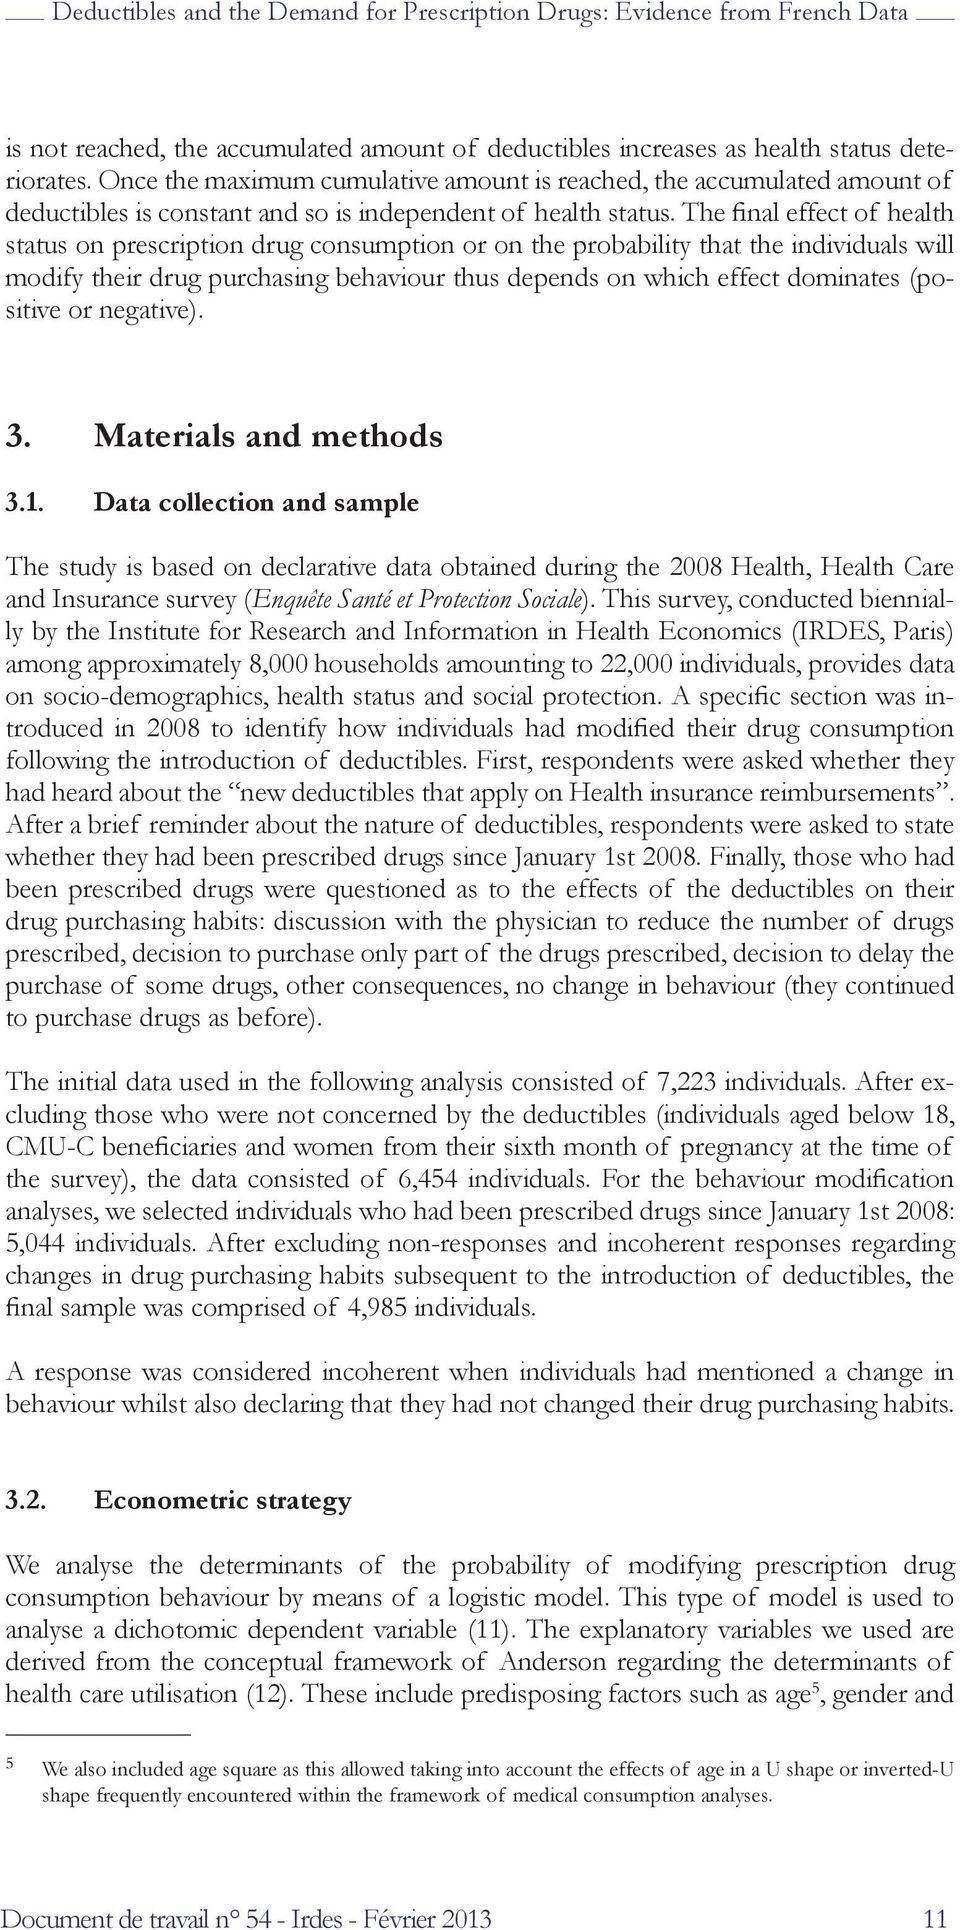 The final effect of health status on prescription drug consumption or on the probability that the individuals will modify their drug purchasing behaviour thus depends on which effect dominates